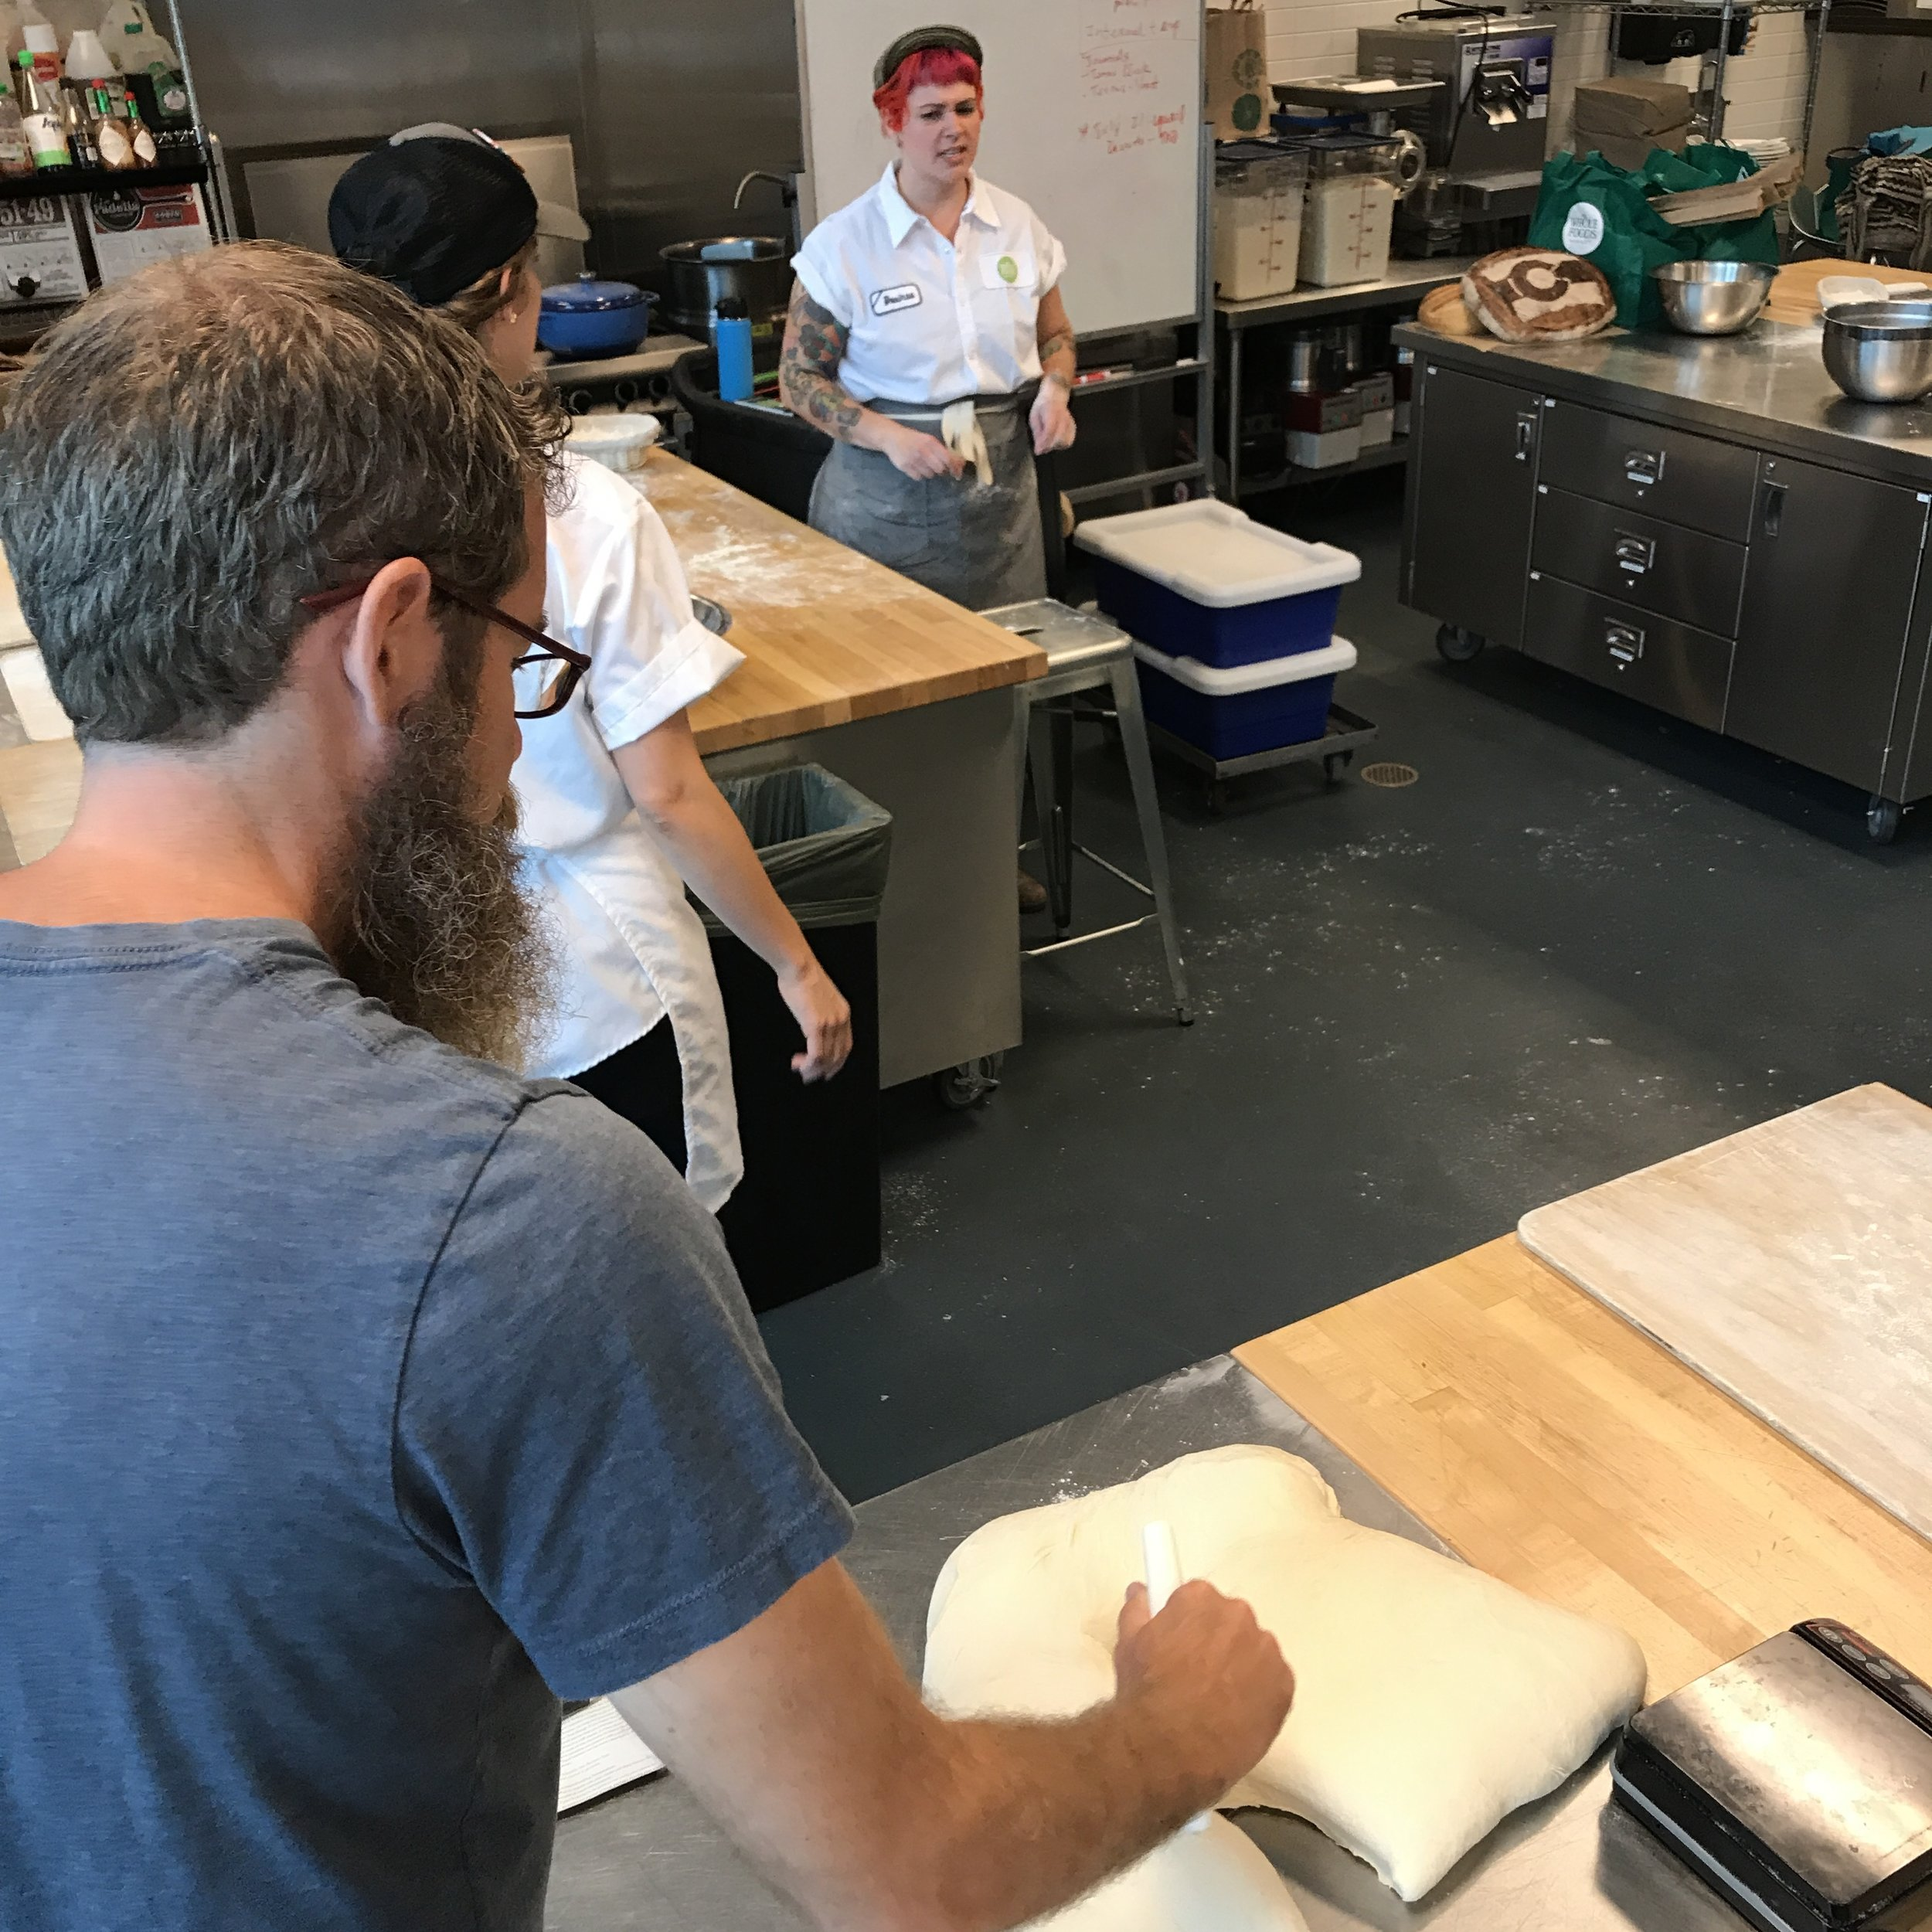 Learning the ropes about making (and caring for) your own Sourdough starter.